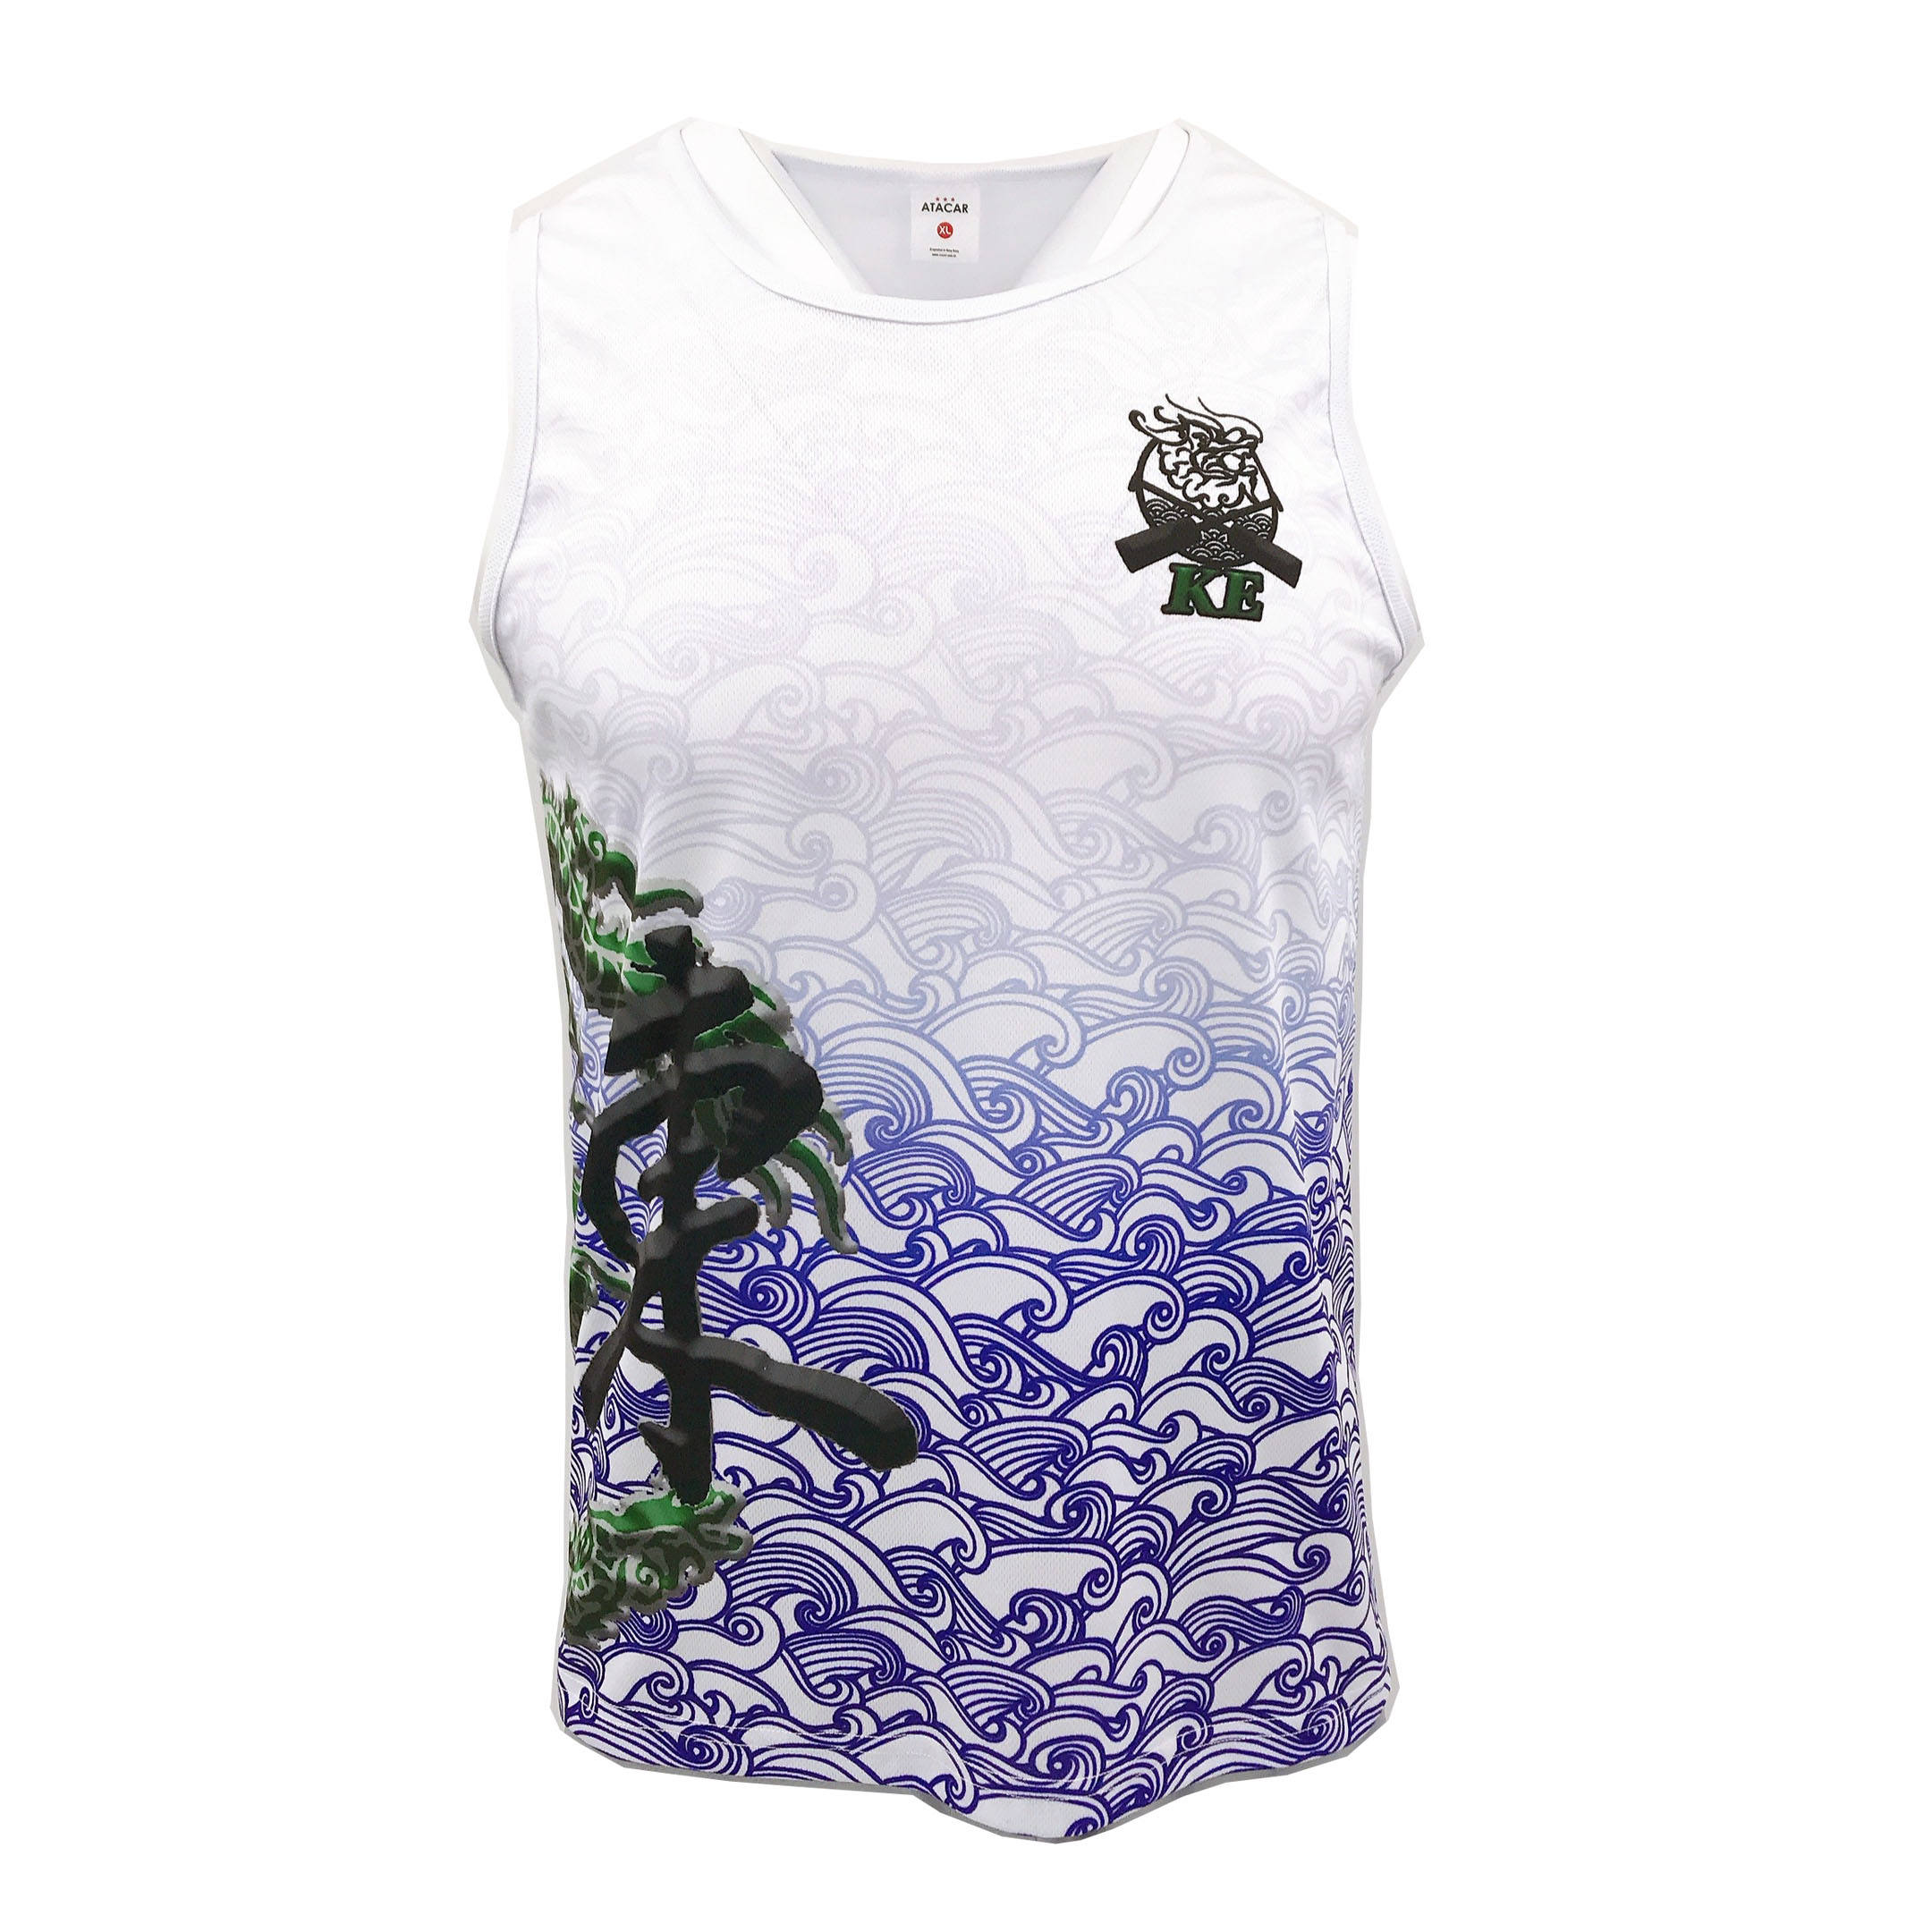 100% Polyester custom design sublimation sport vest for running,hiking,rowing etc.